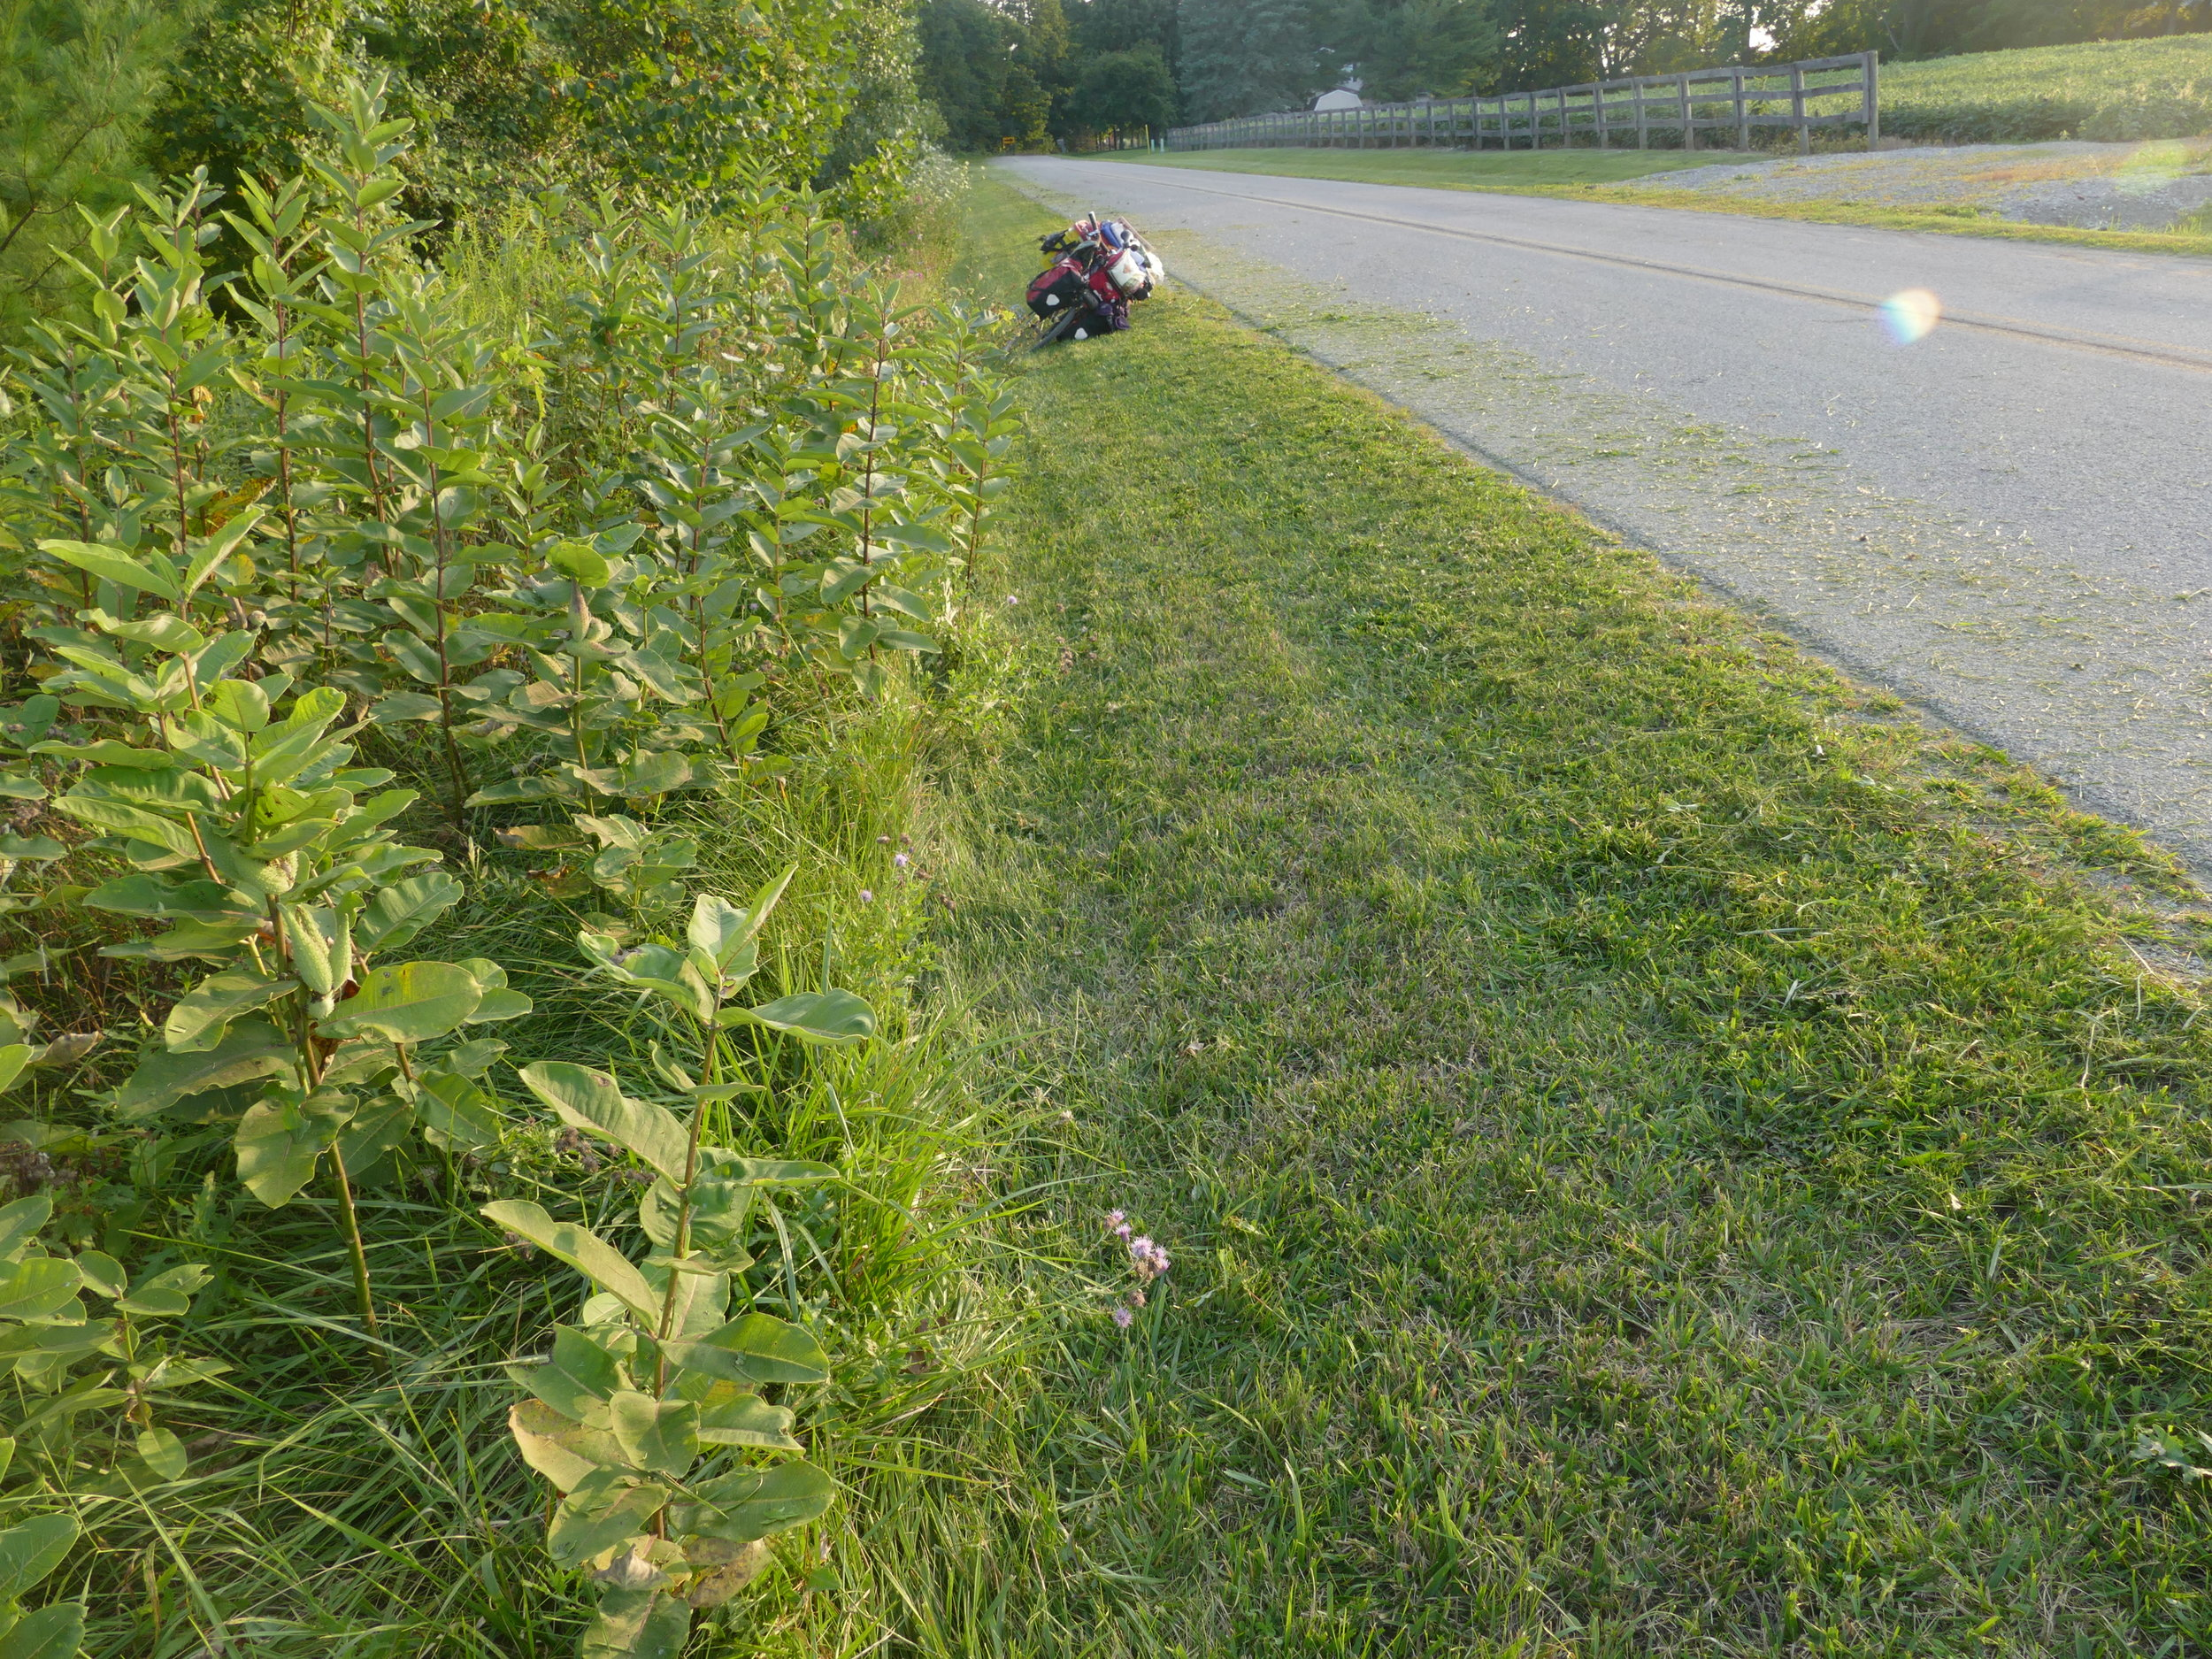 Mowing the ditches means many caterpillars, eggs, and chrysalids won't survive.